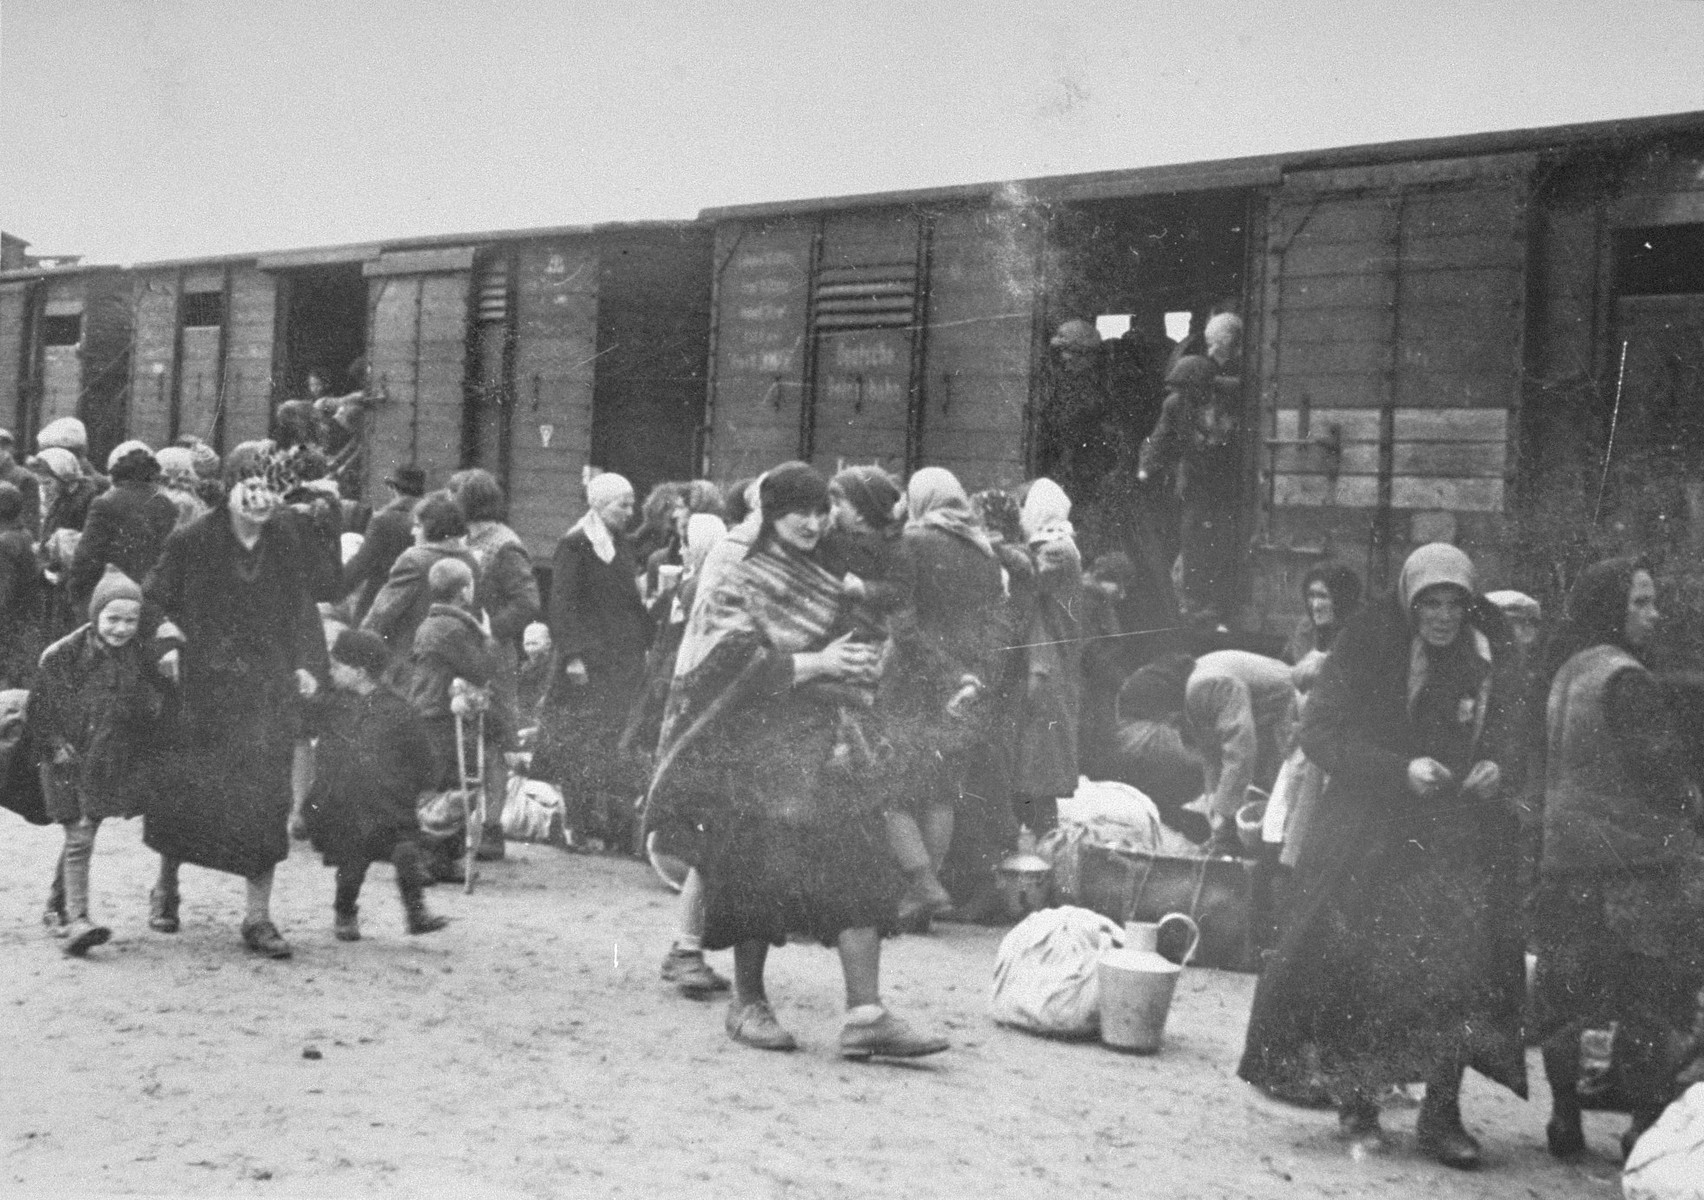 Jews from Subcarpathian Rus get off the deportation train and assemble on the ramp at Auschwitz-Birkenau.